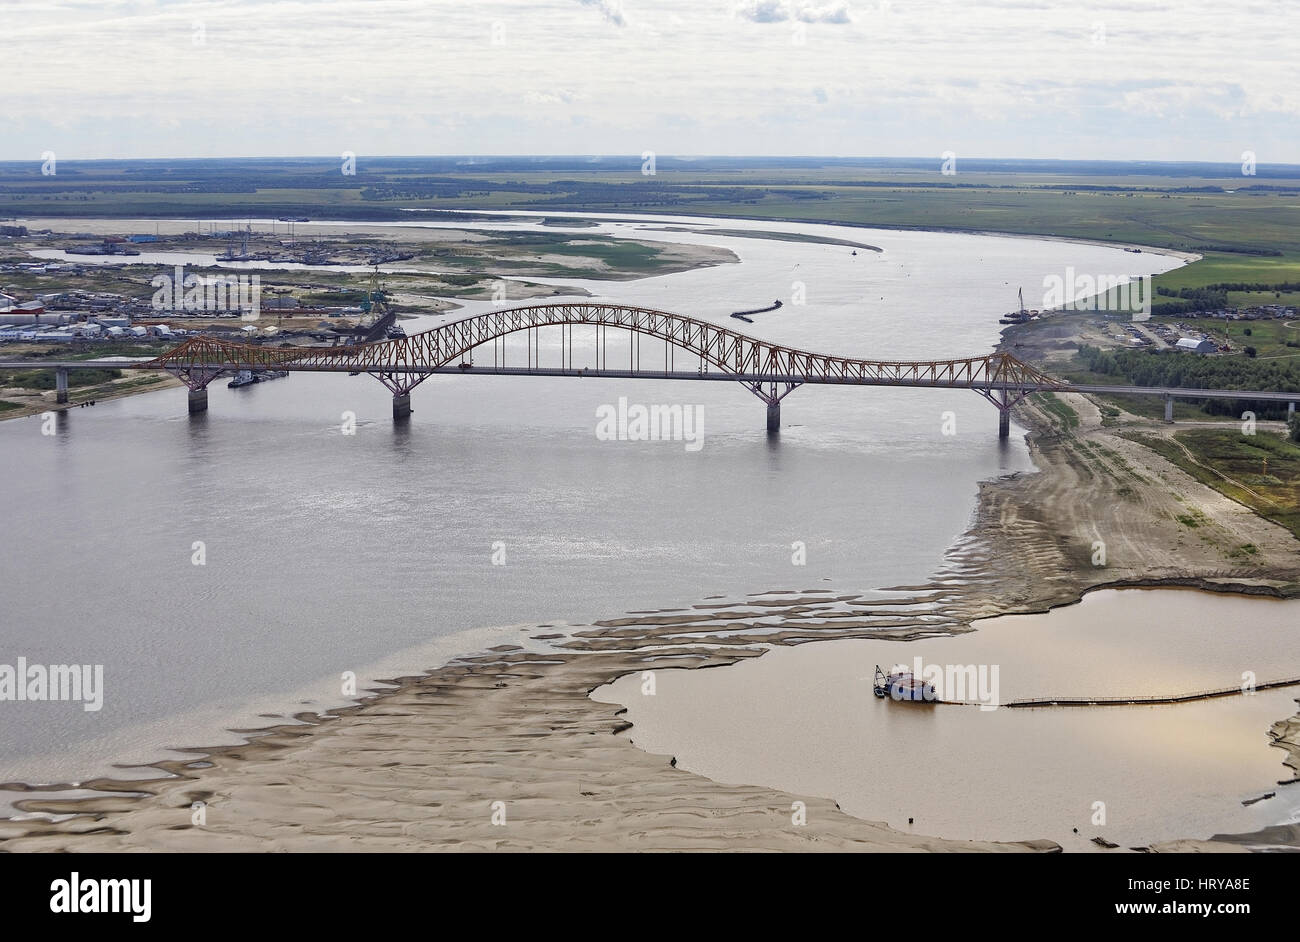 Russia,Khanty-Mansiysk, a top view of the bridge RED DRAGON over the Irtysh - Stock Image